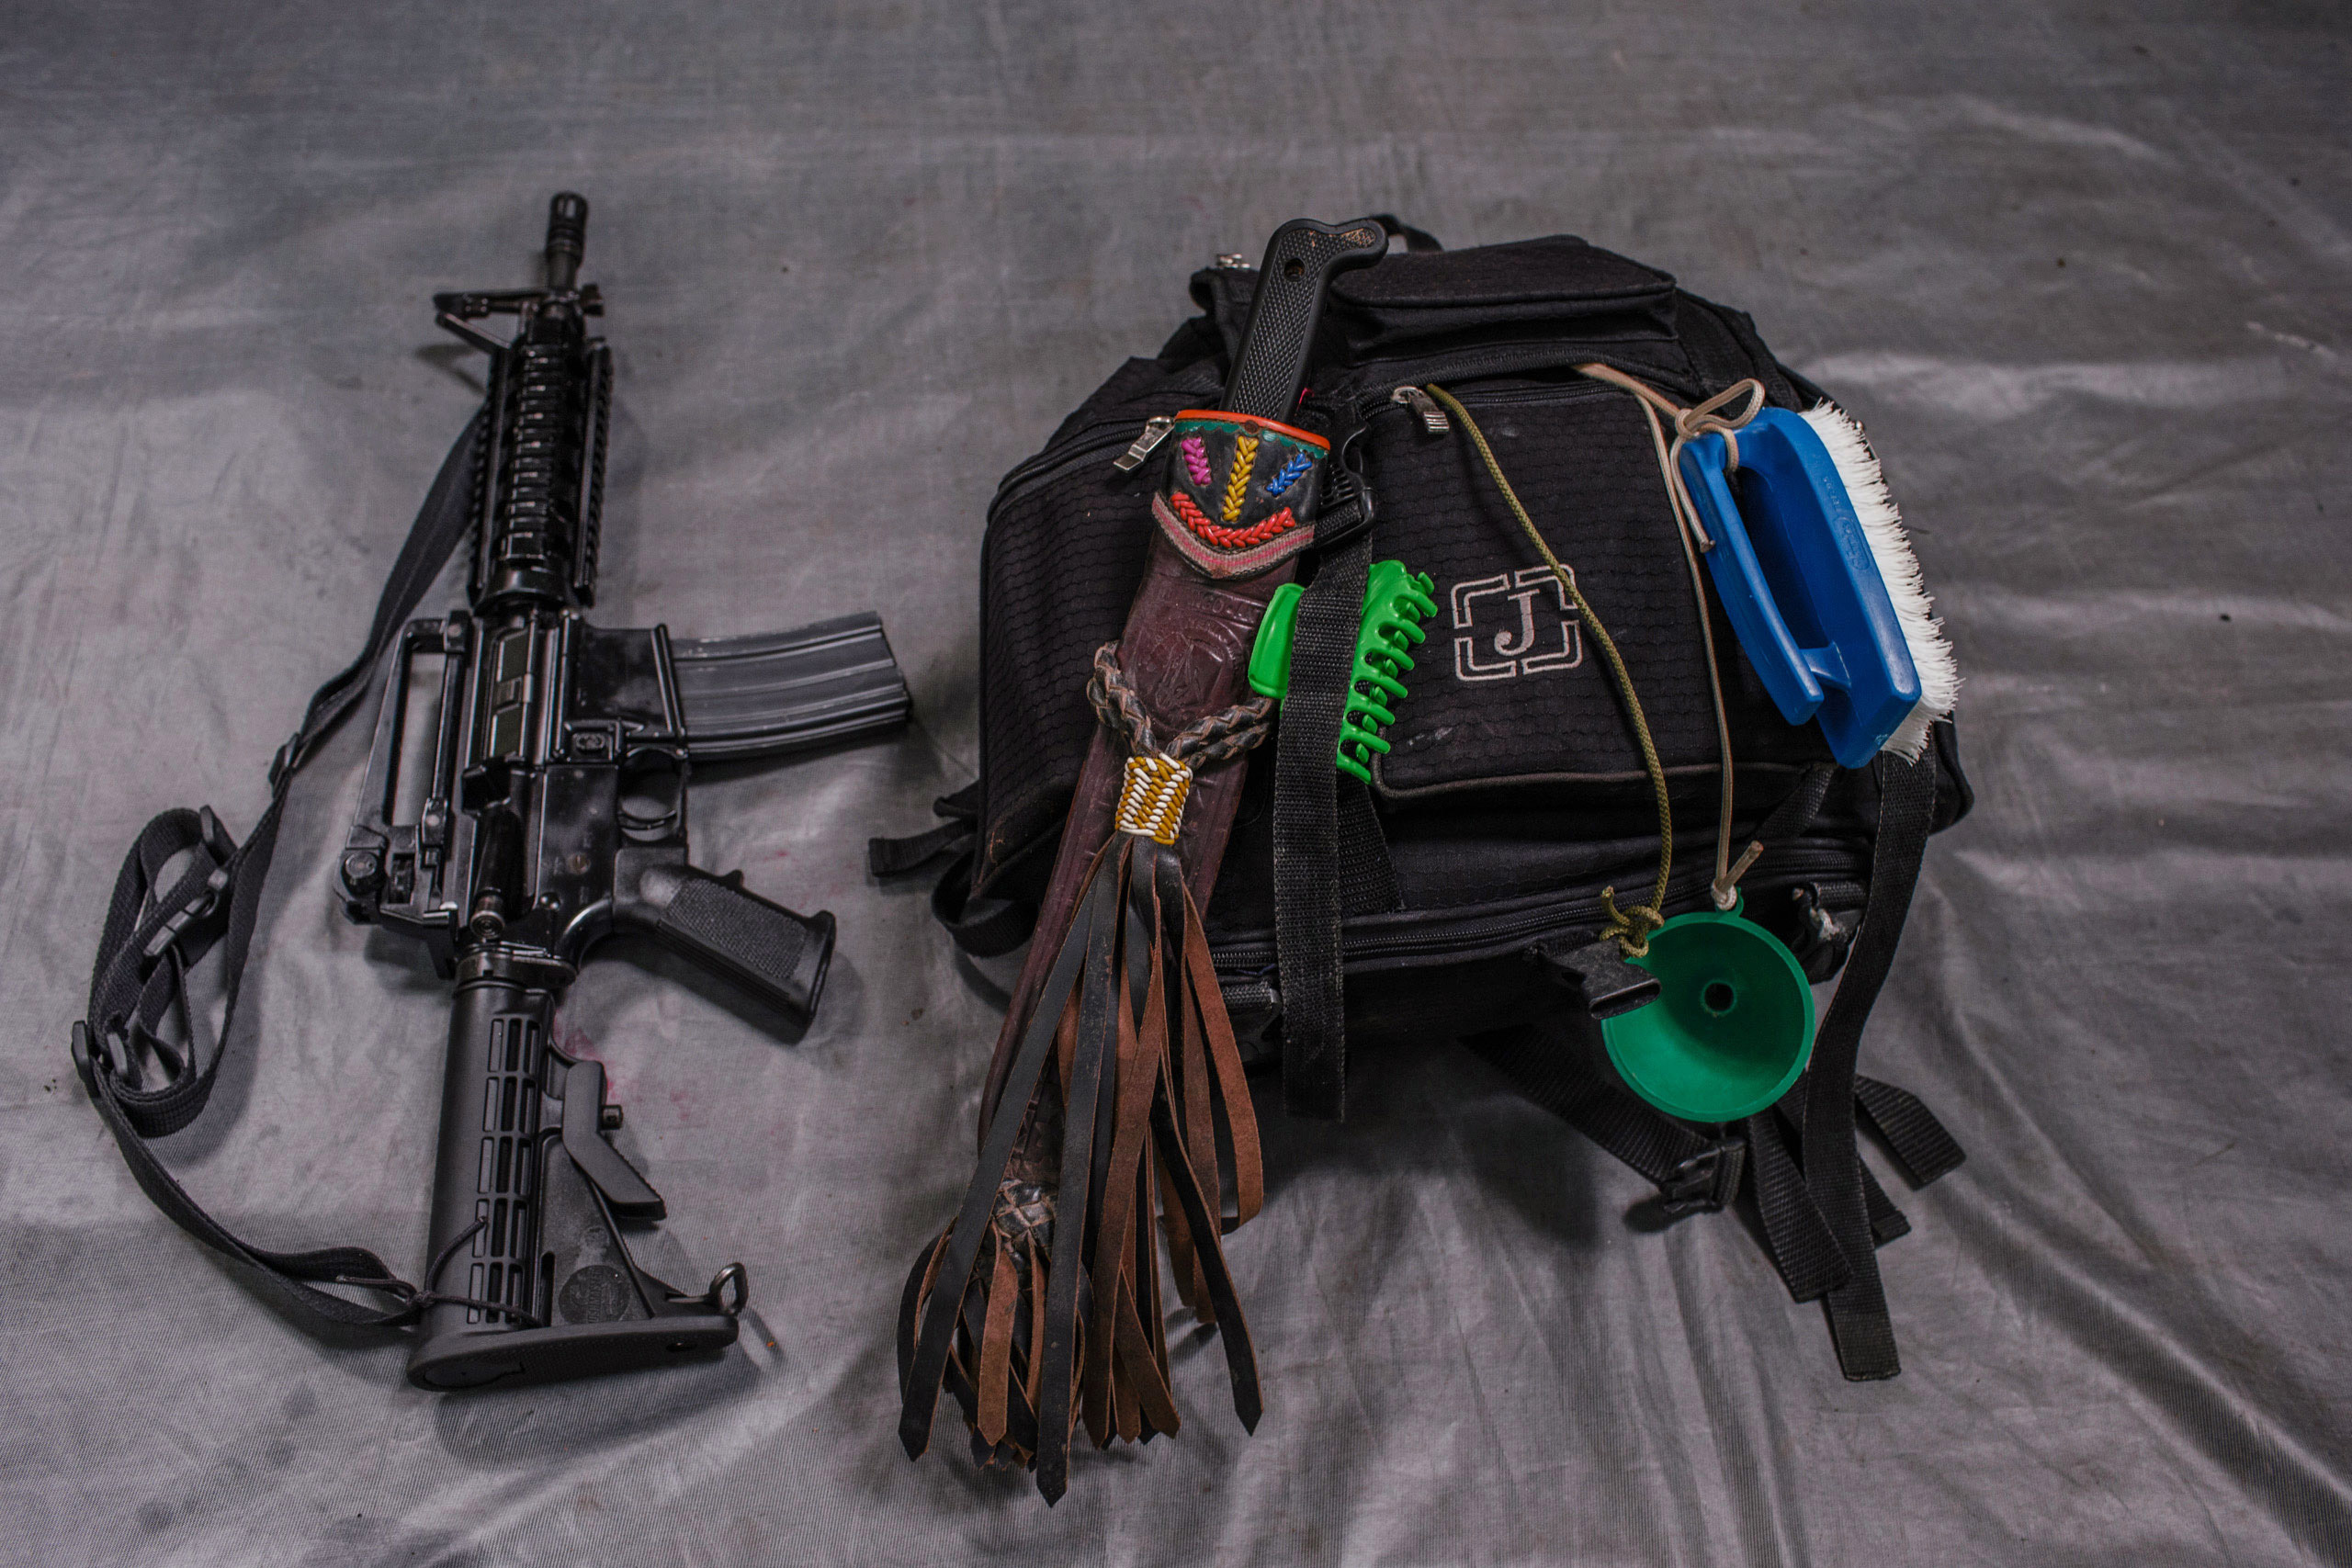 The backpack and M15 rifle that belong to  Glodis , a 33-year old who has been a FARC member for 19 years. She uses the  brush attached to her bag to wash clothes.